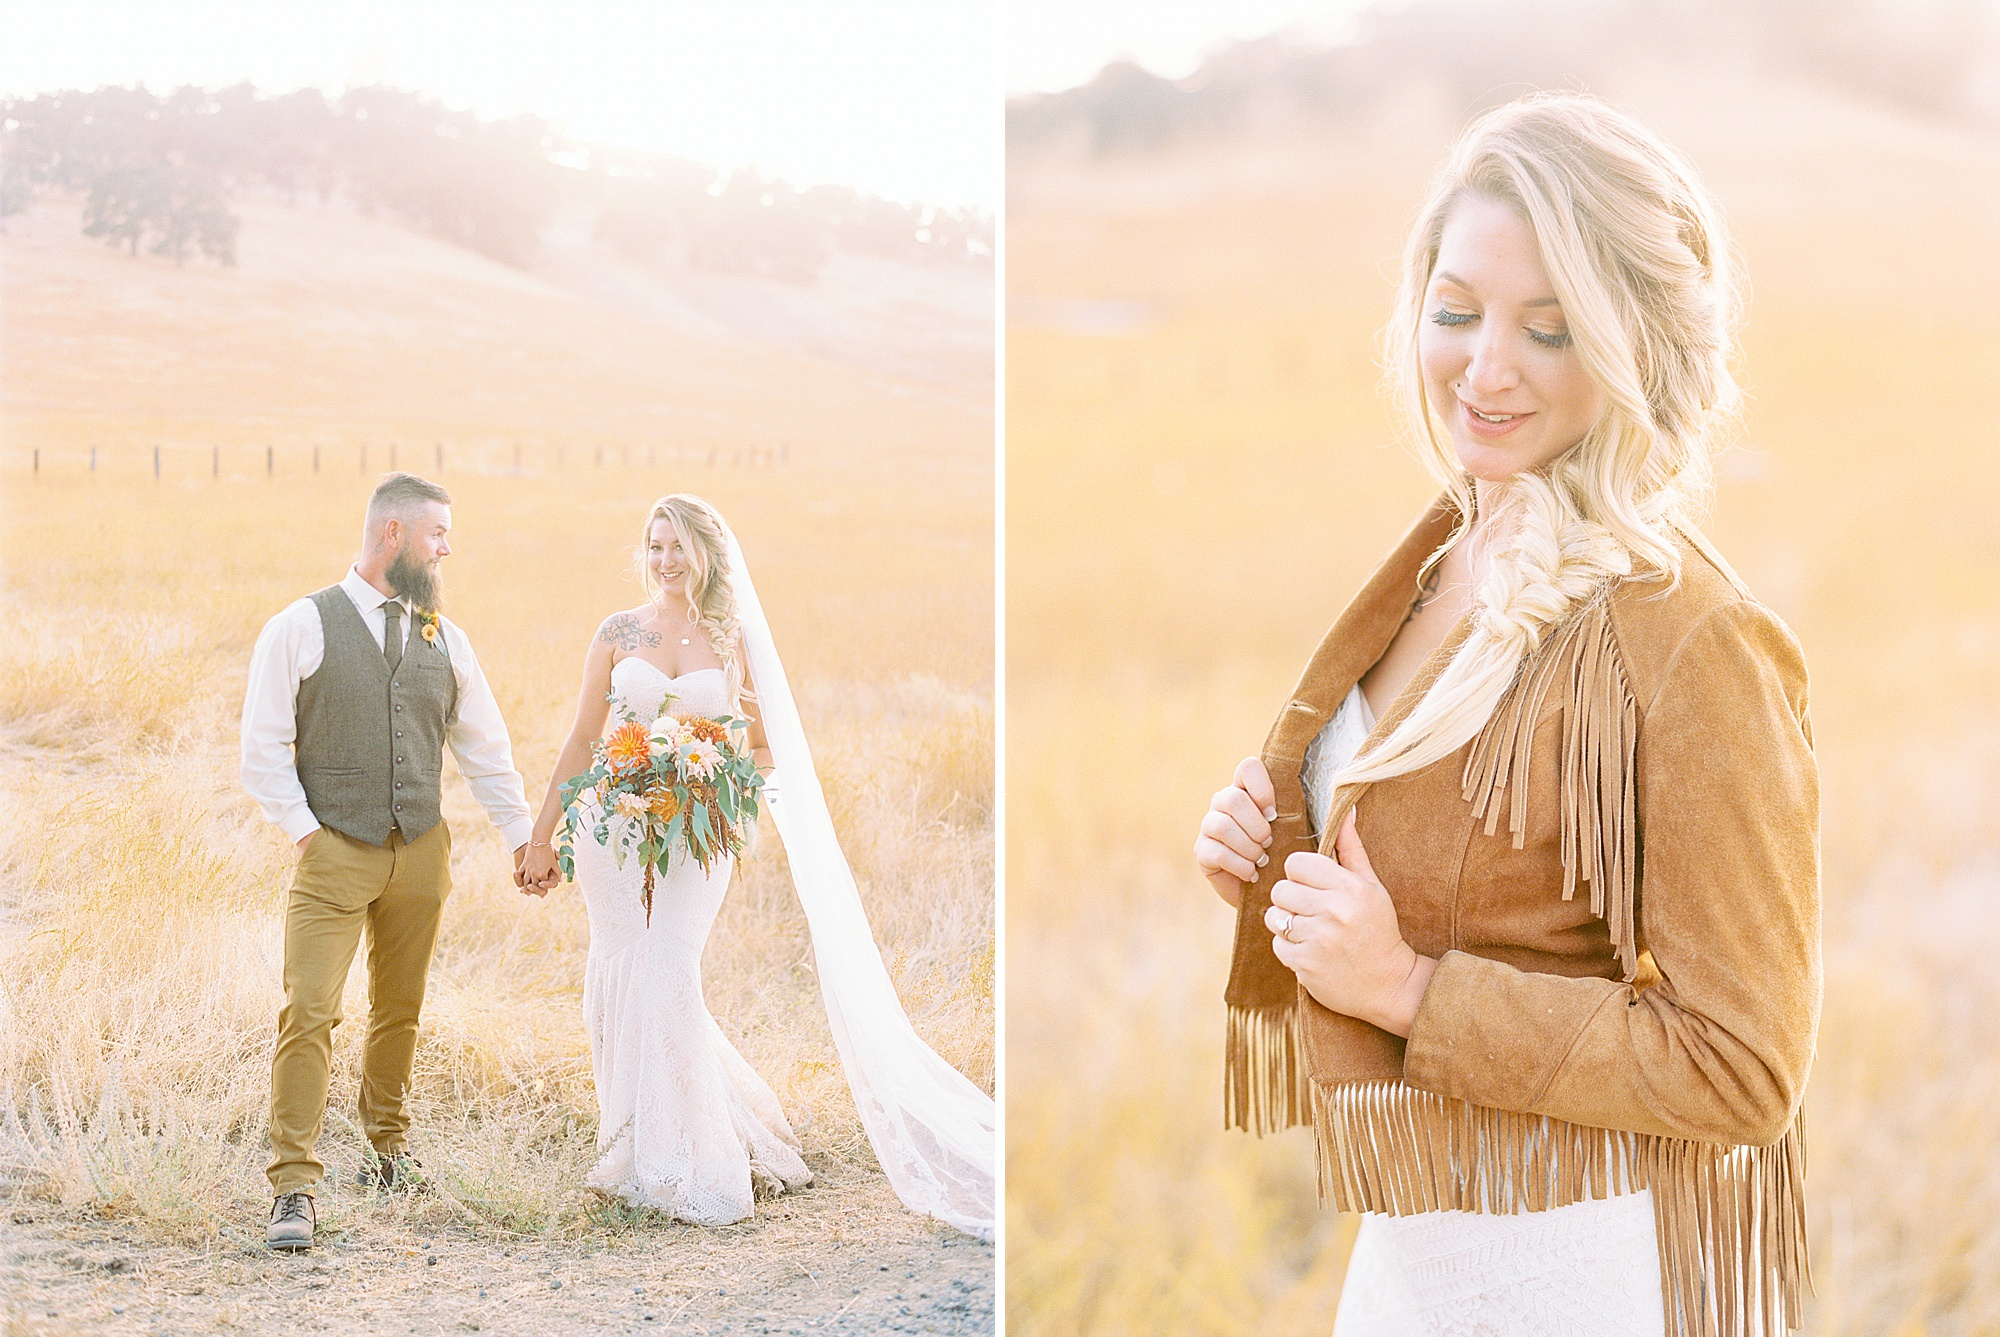 Sonora Wedding Photographer - Tiffany and Jesse - Ashley Baumgartner - Private Estate Summer Wedding_0117.jpg